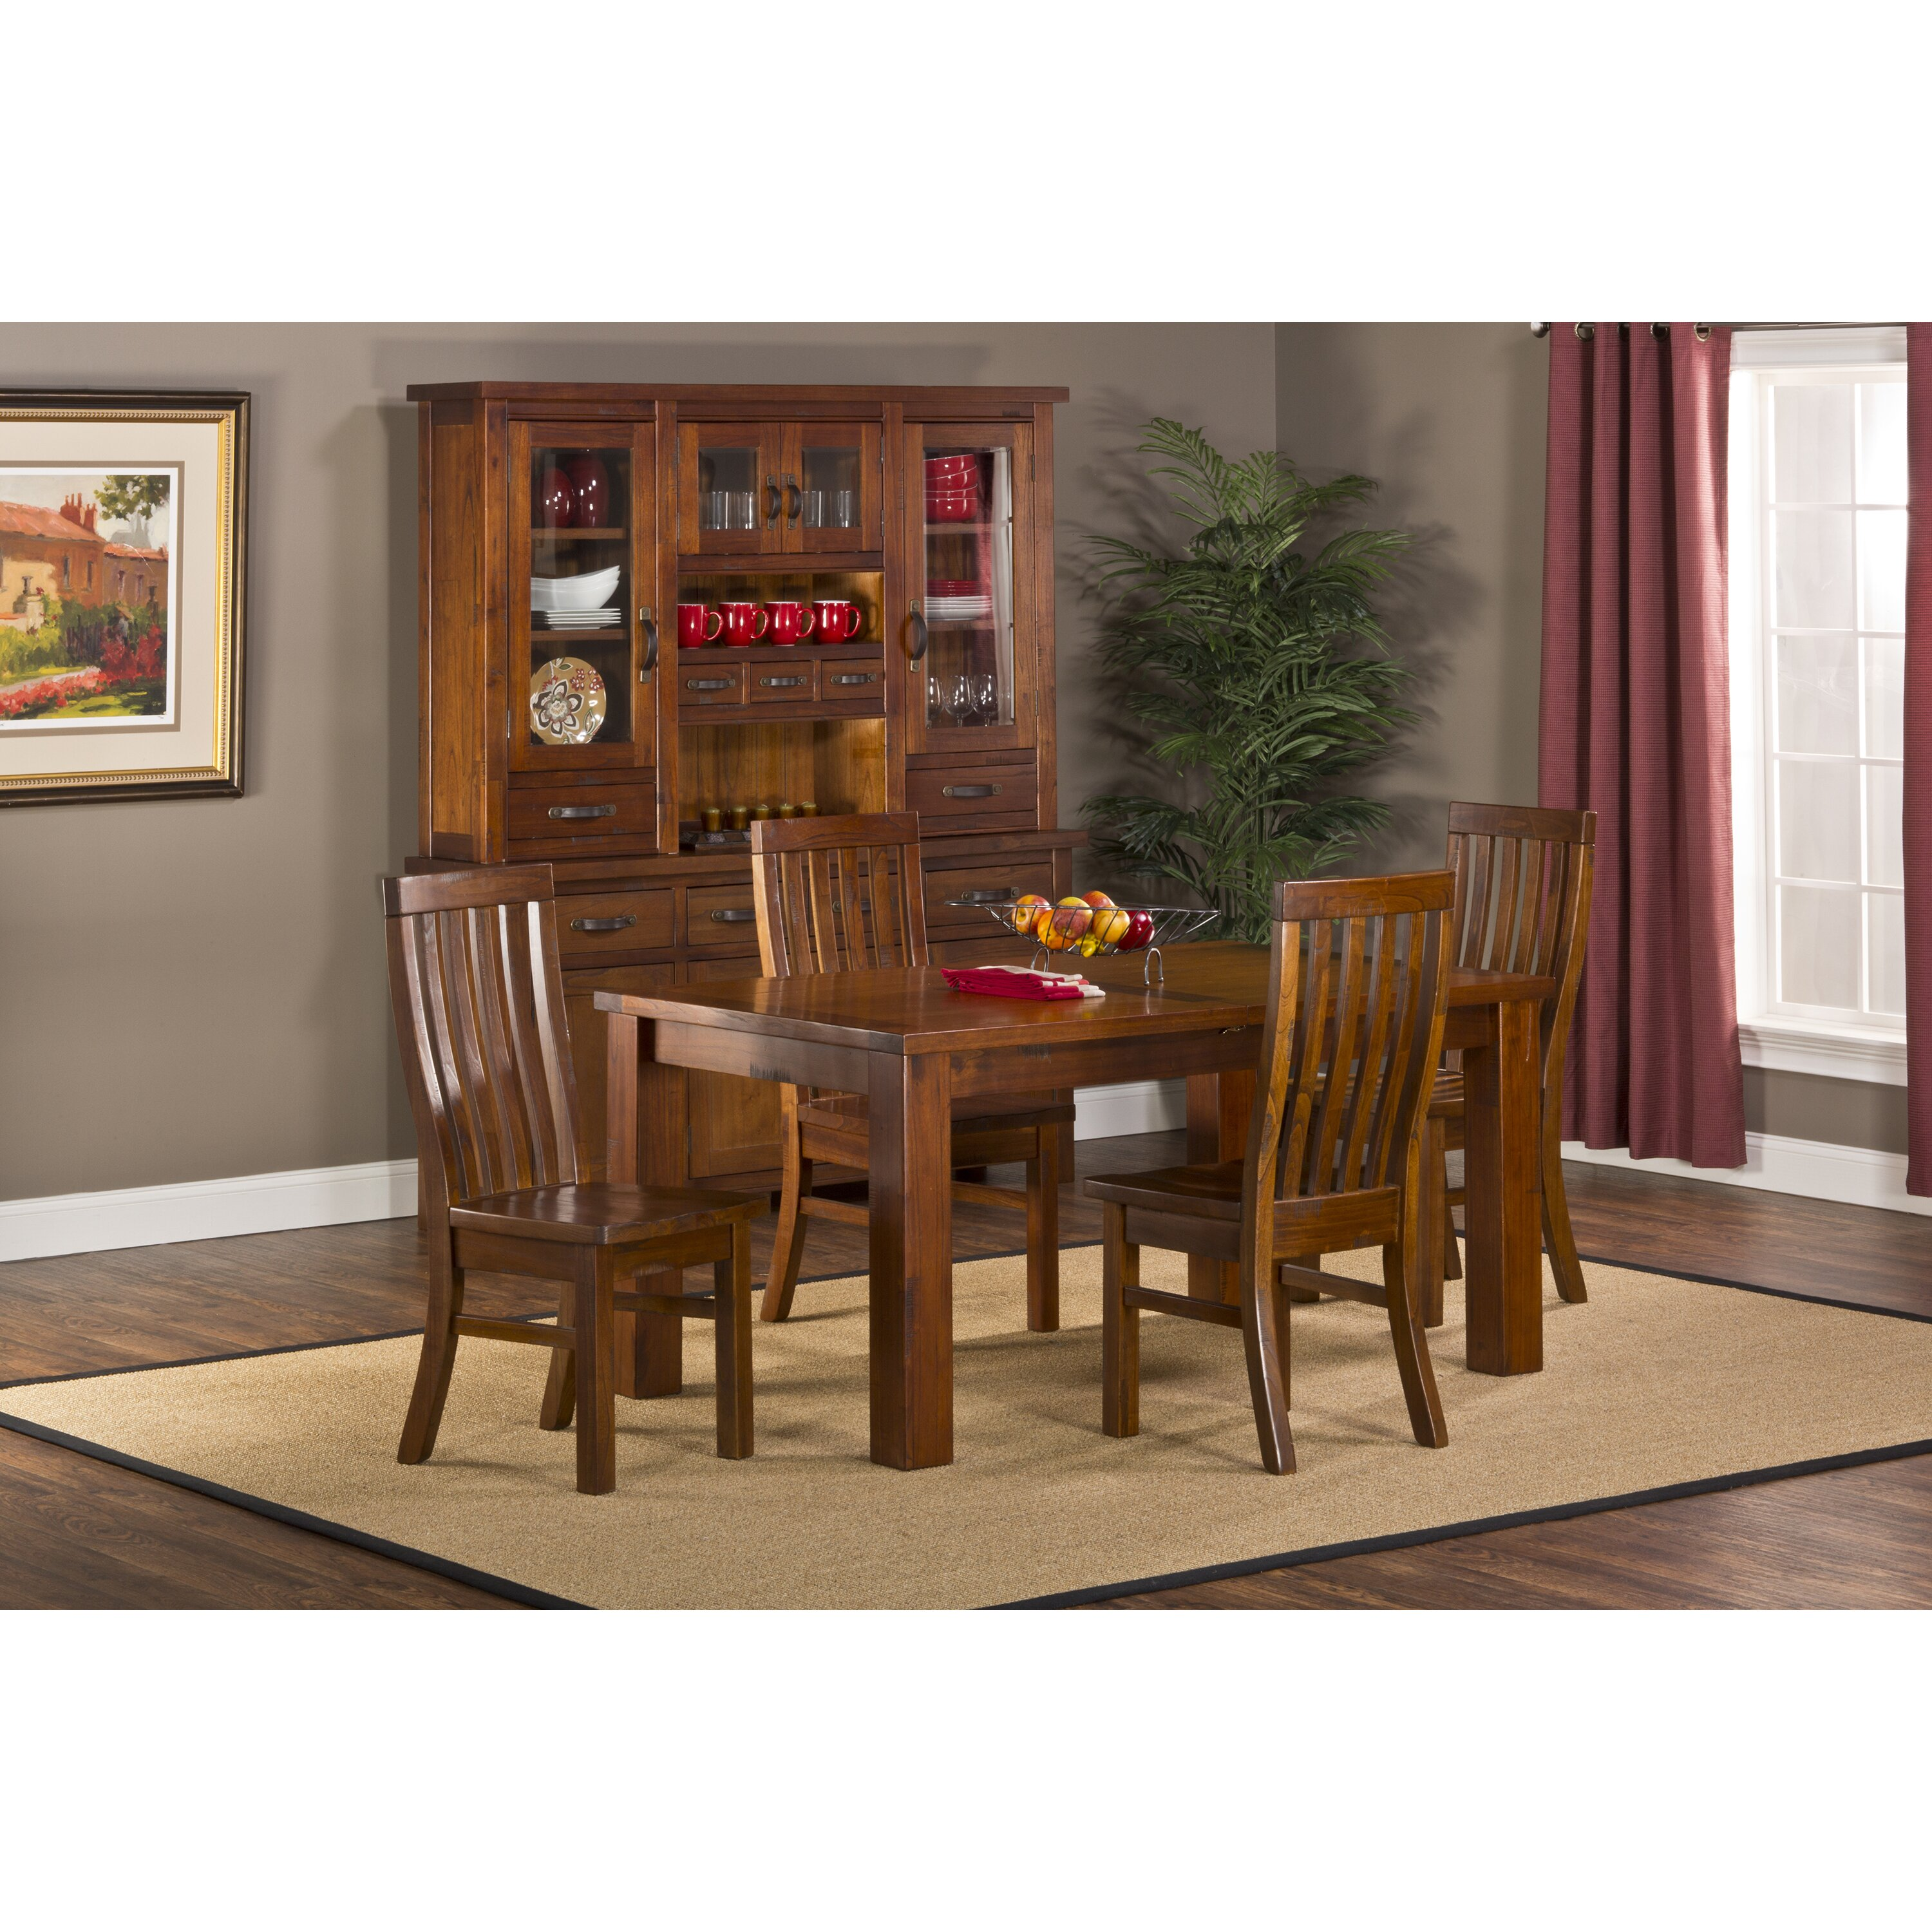 Hillsdale Furniture Bennington 5pc Dining Room Set In: Hillsdale Outback 5 Piece Dining Set & Reviews